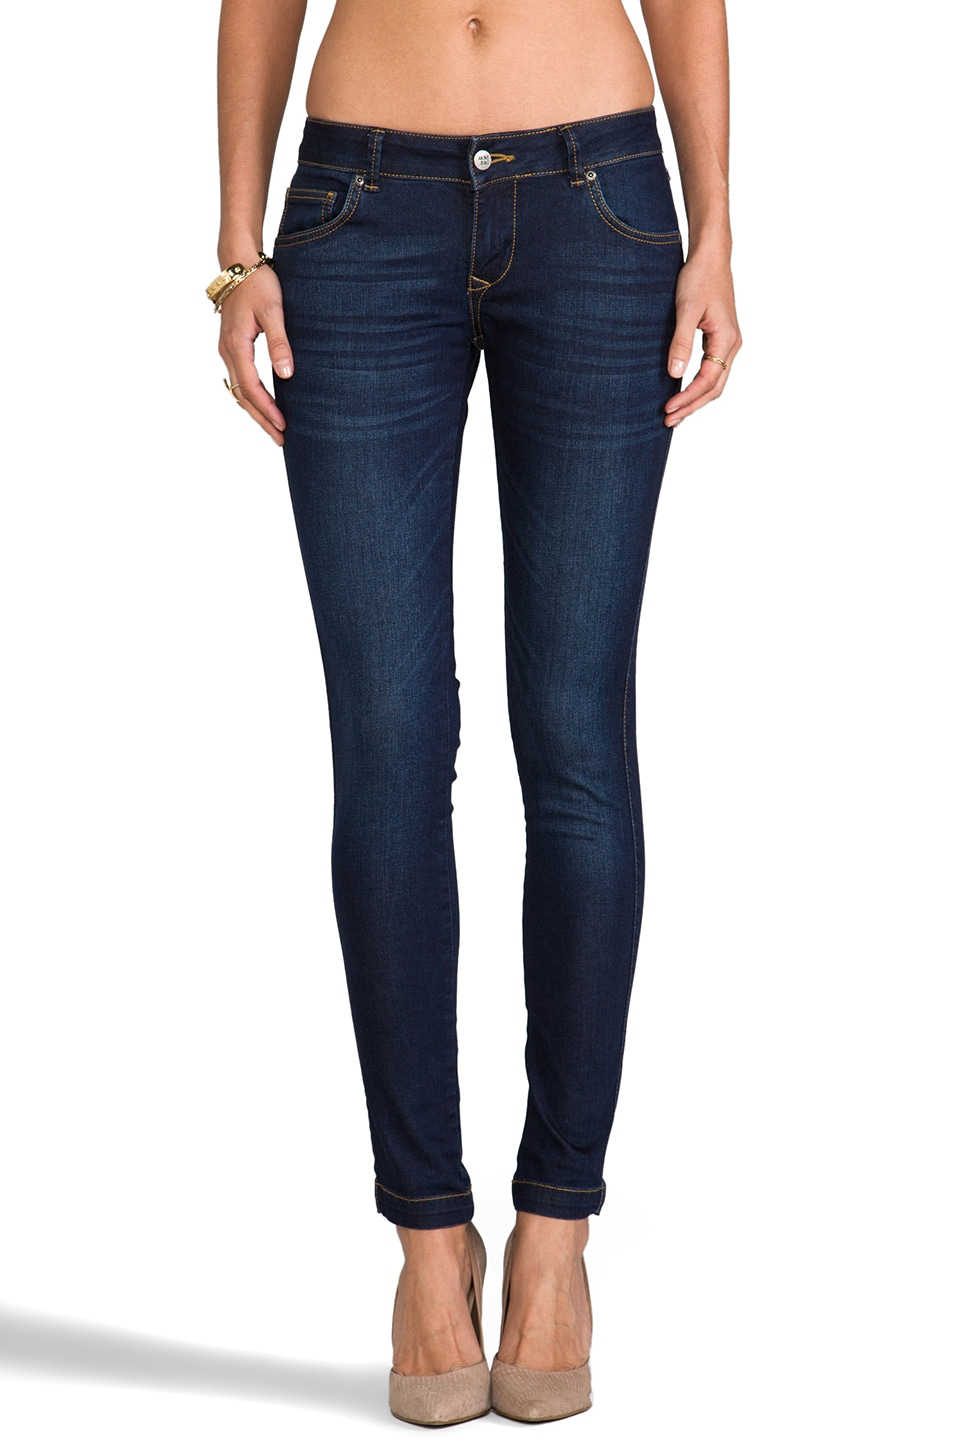 ANINE BING Classic Skinny Jean in Used Blue